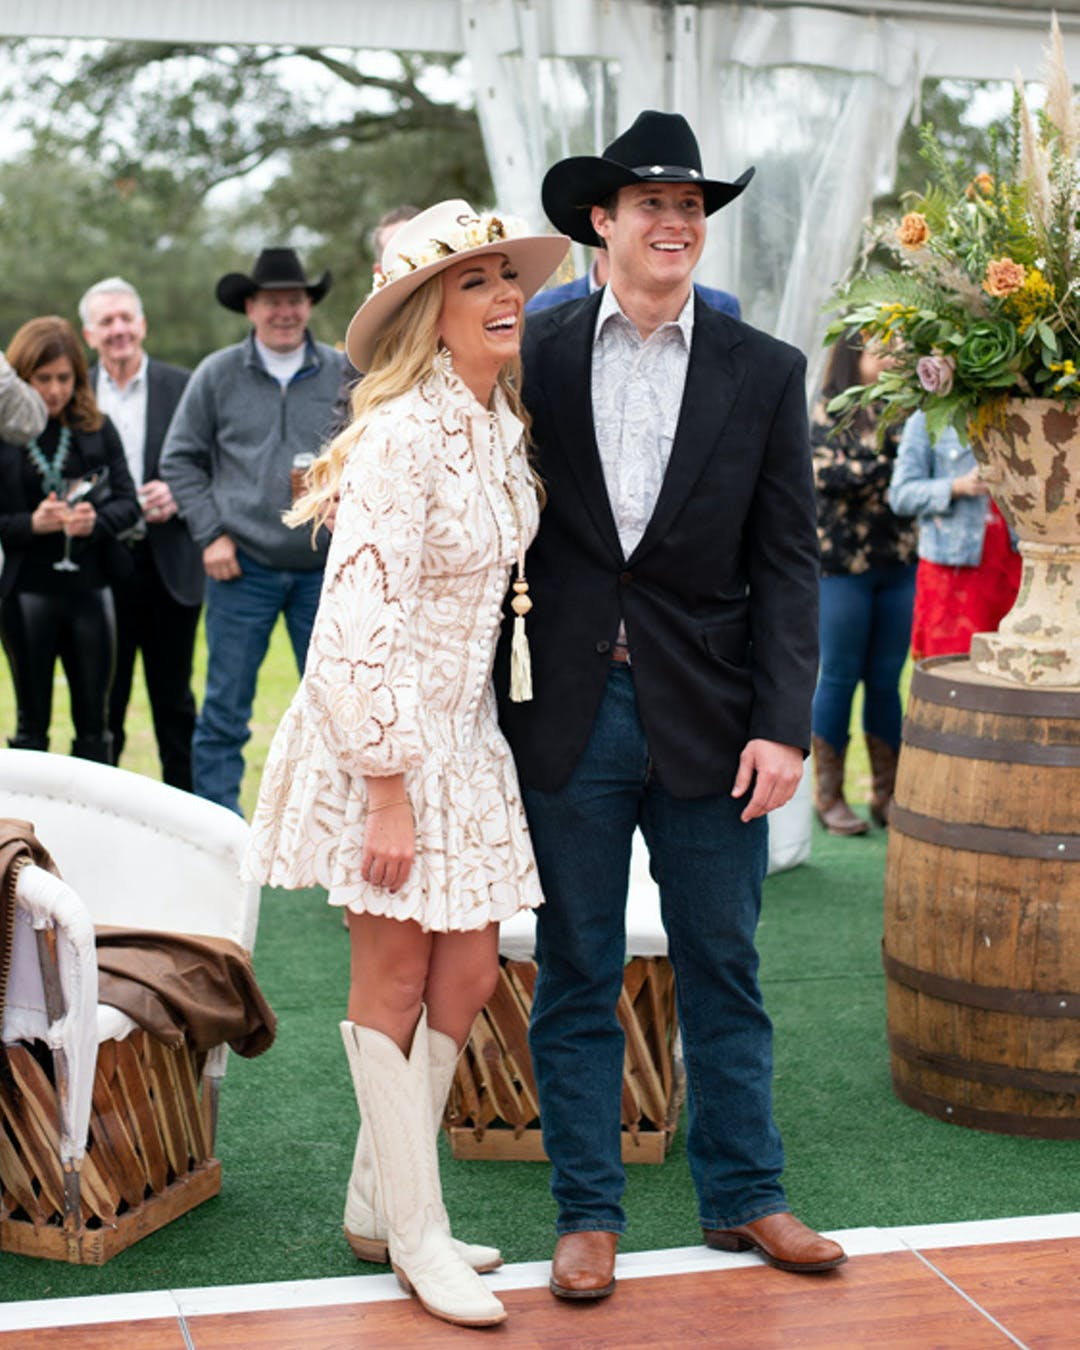 Couple poses in country outfits for country-themed engagement party | PartySlate